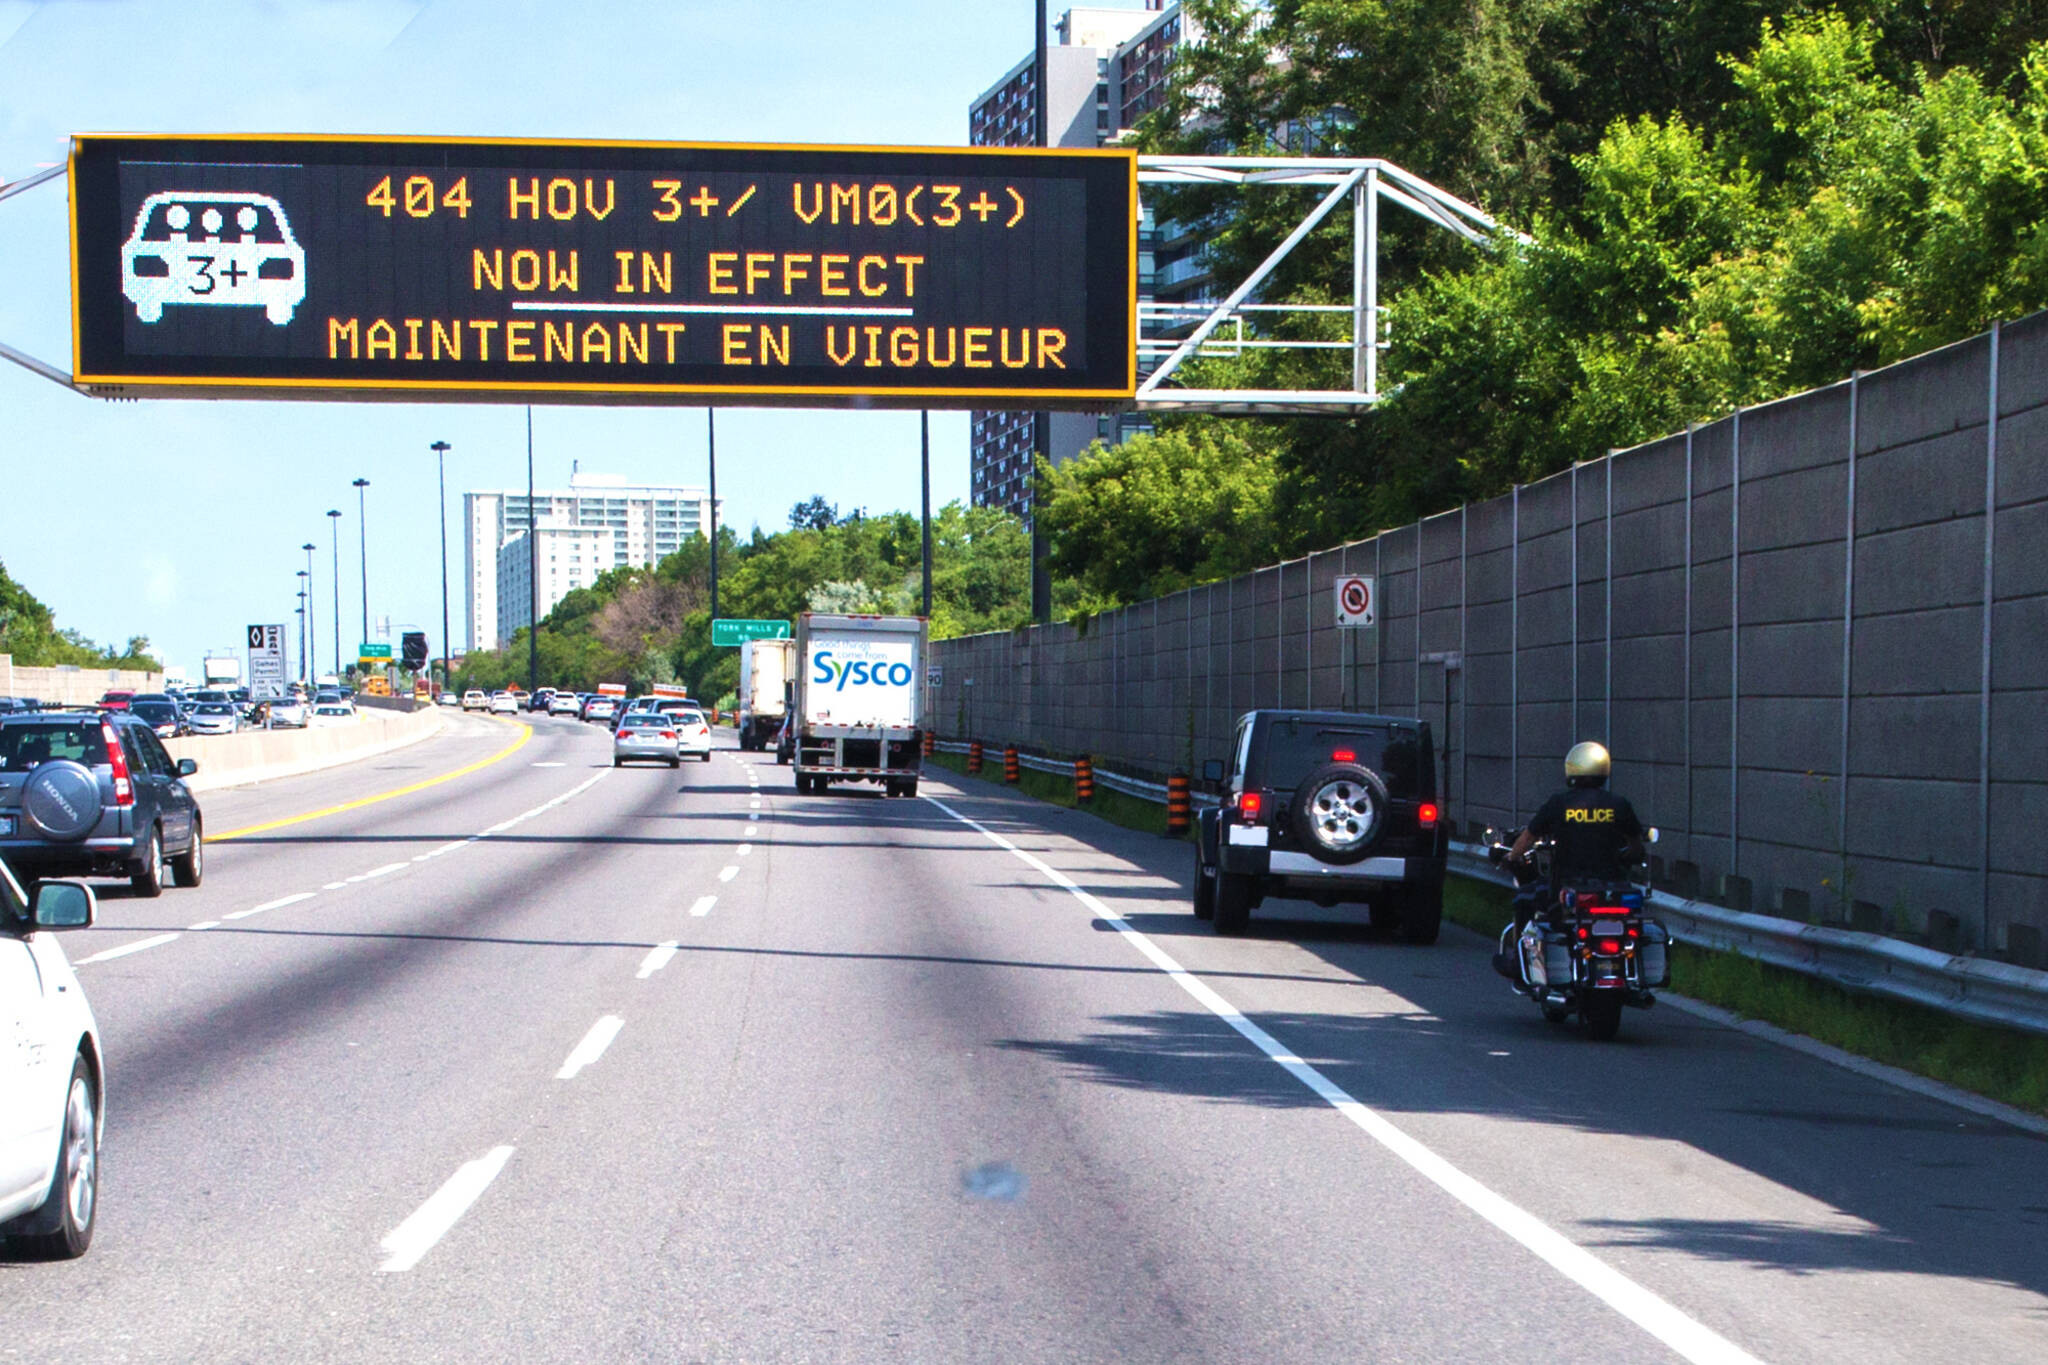 What Is Hov Lane >> Toronto To Use Drones To Check Passenger Numbers In Hov Lanes